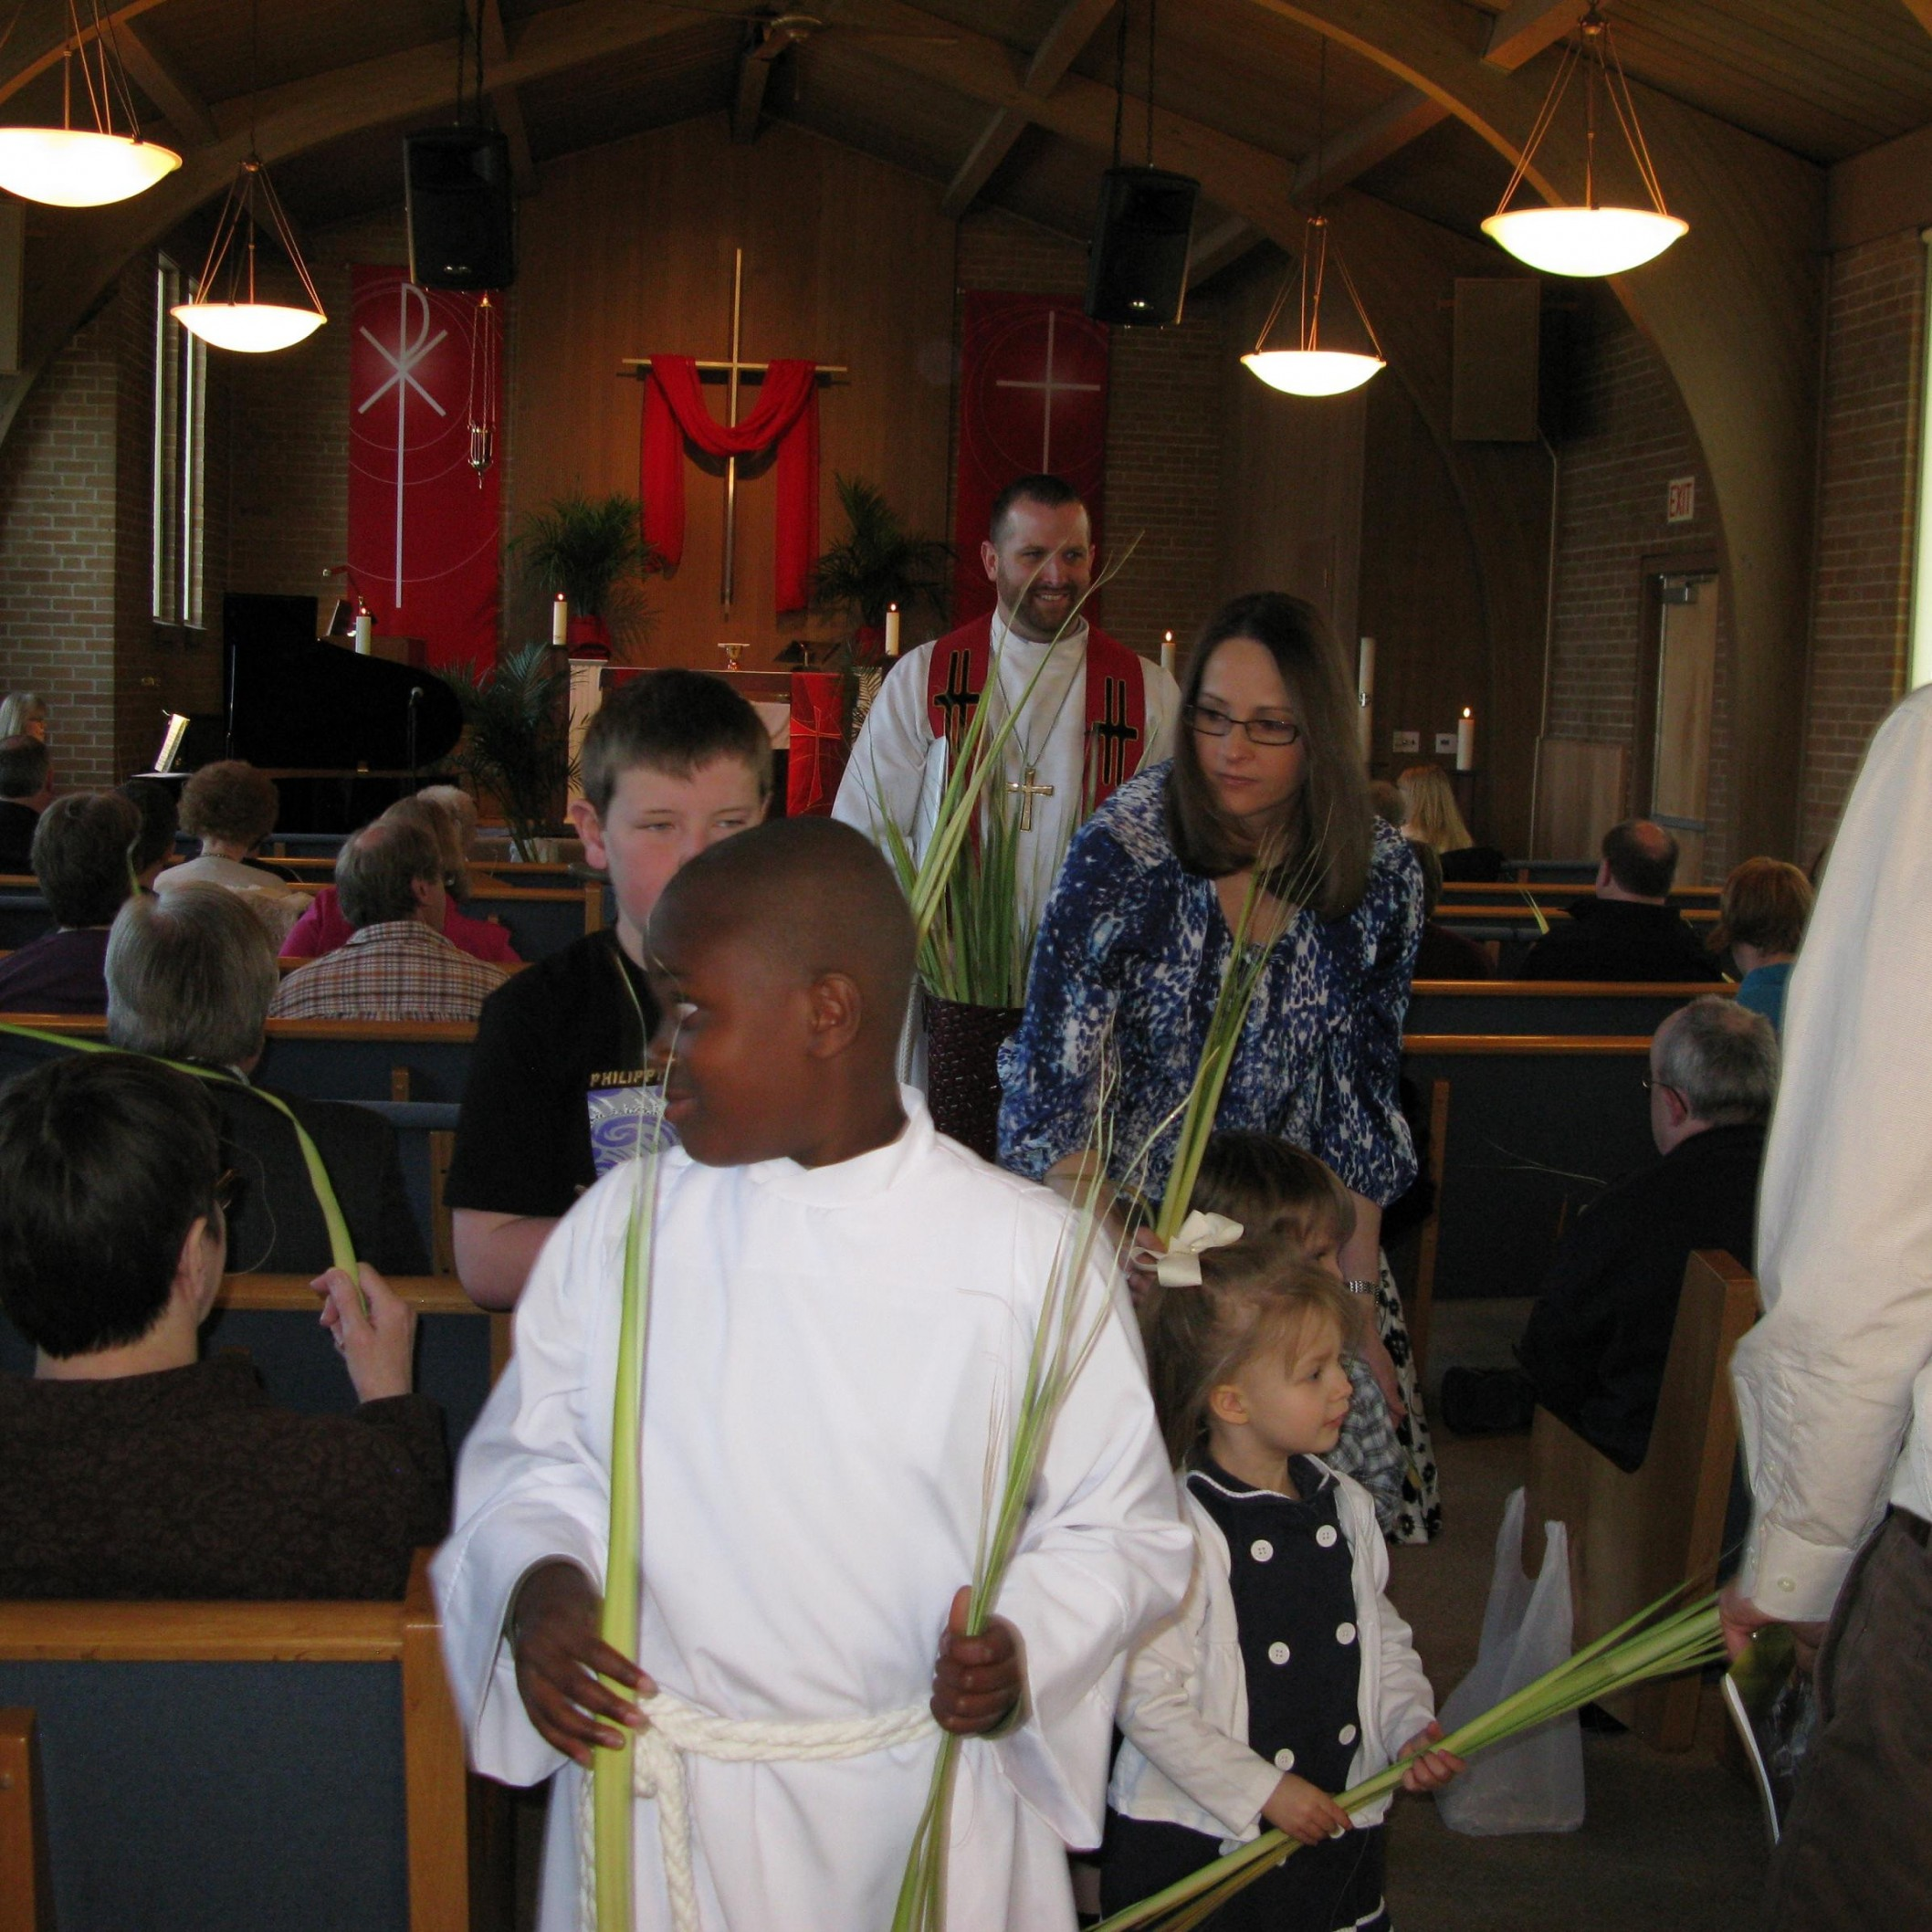 Palm Sunday Pastor Kids palm fronds exiting